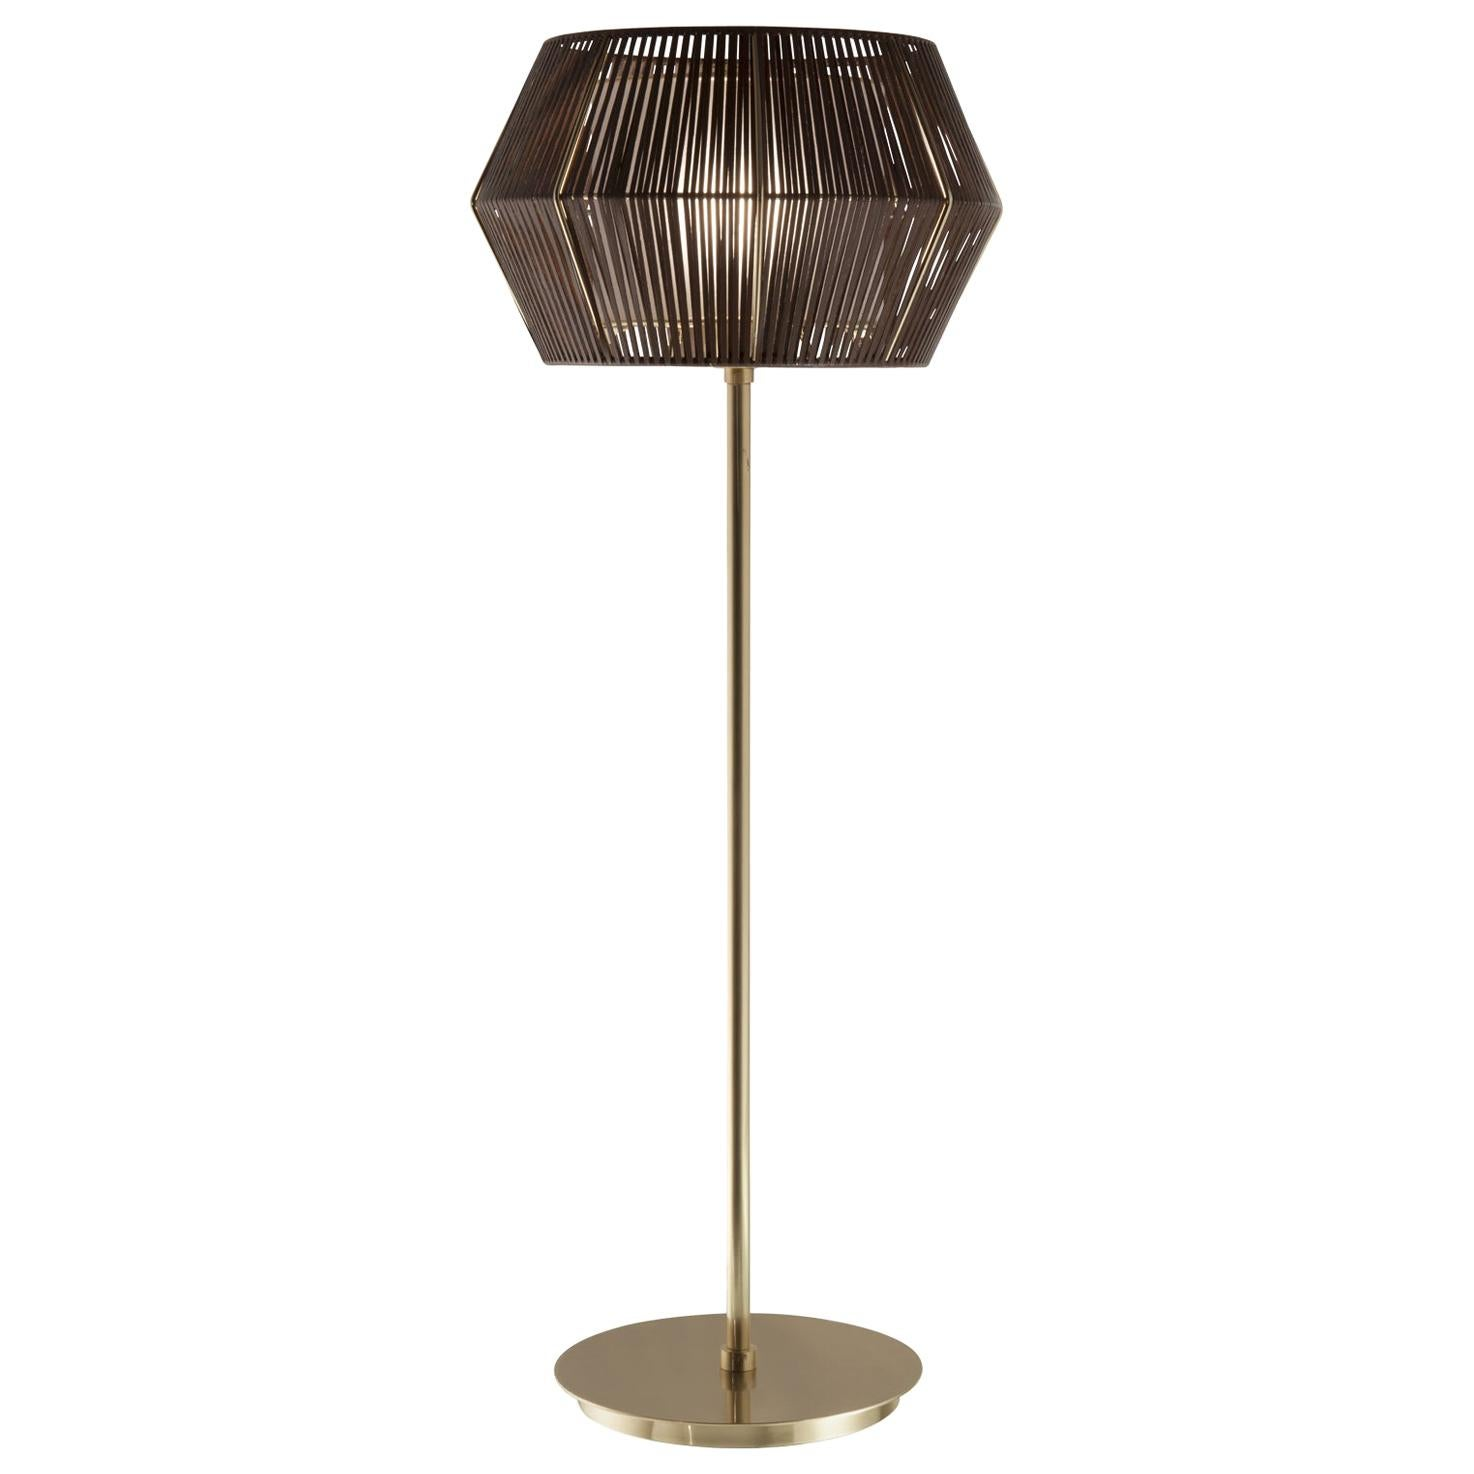 21st Century Novecento Brass and Eco Leather Table Lamp by Roberto Lazzeroni